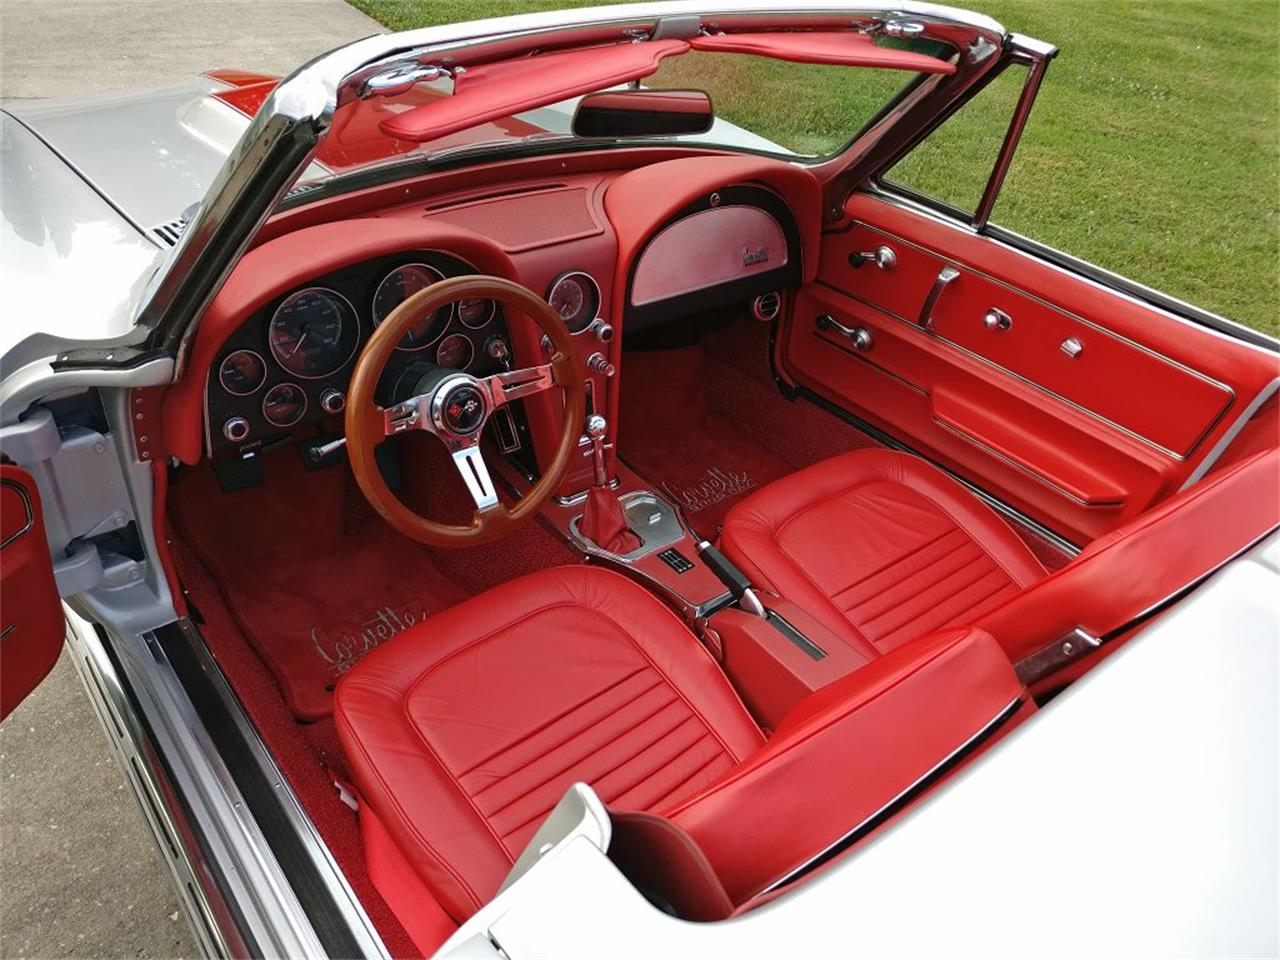 Large Picture of Classic '67 Corvette located in Tennessee - $144,900.00 Offered by Vintage Planet - NR9O